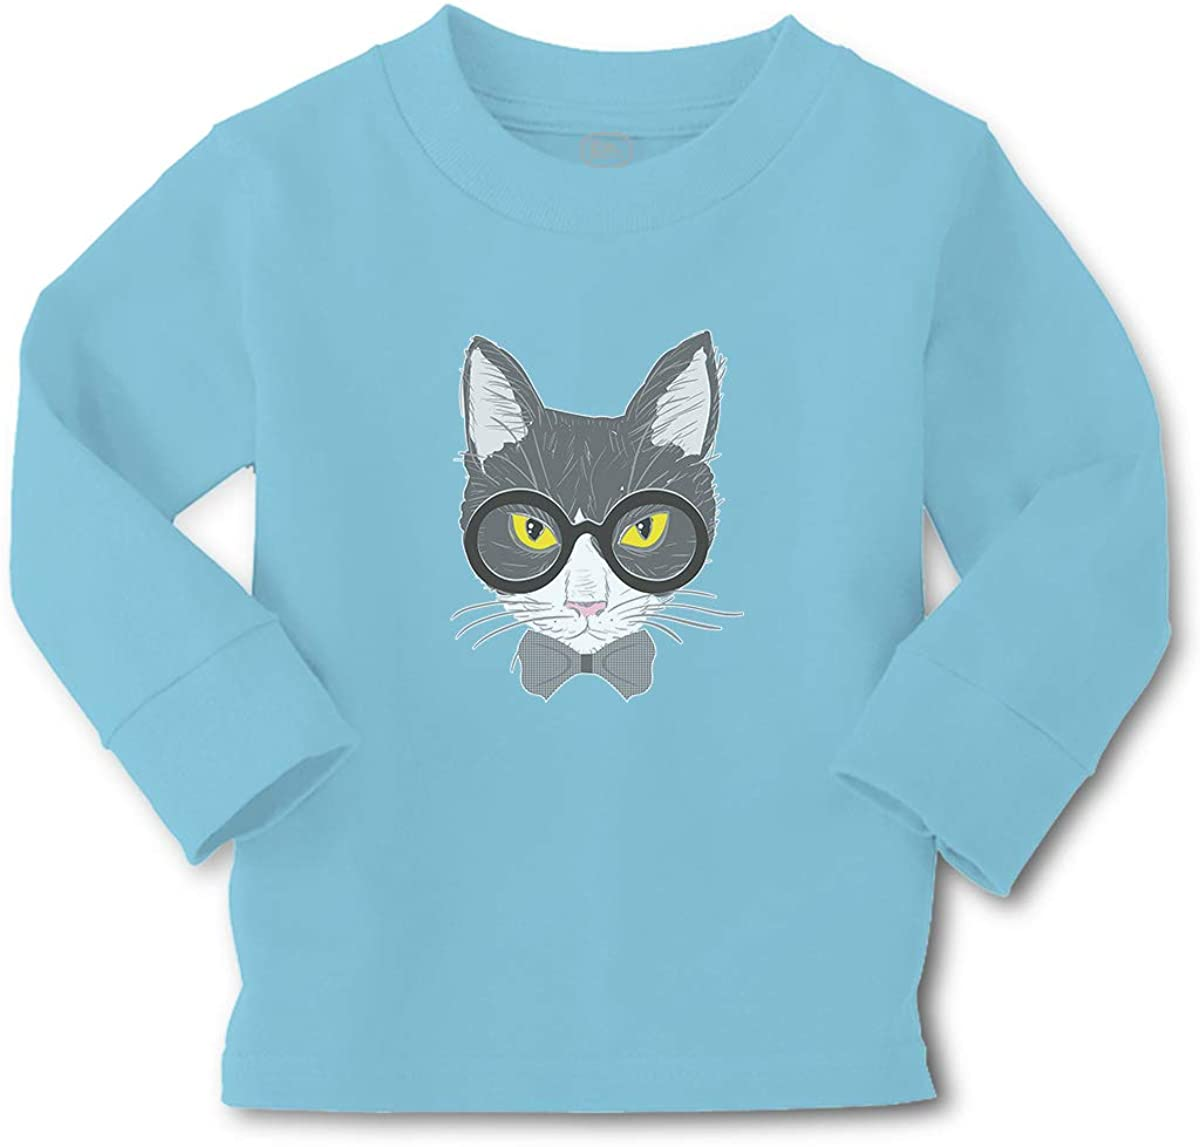 Kids Long Sleeve T Shirt Staring Cat with Sunglass Cotton Boy & Girl Clothes Funny Graphic Tee Light Blue Design Only 4T